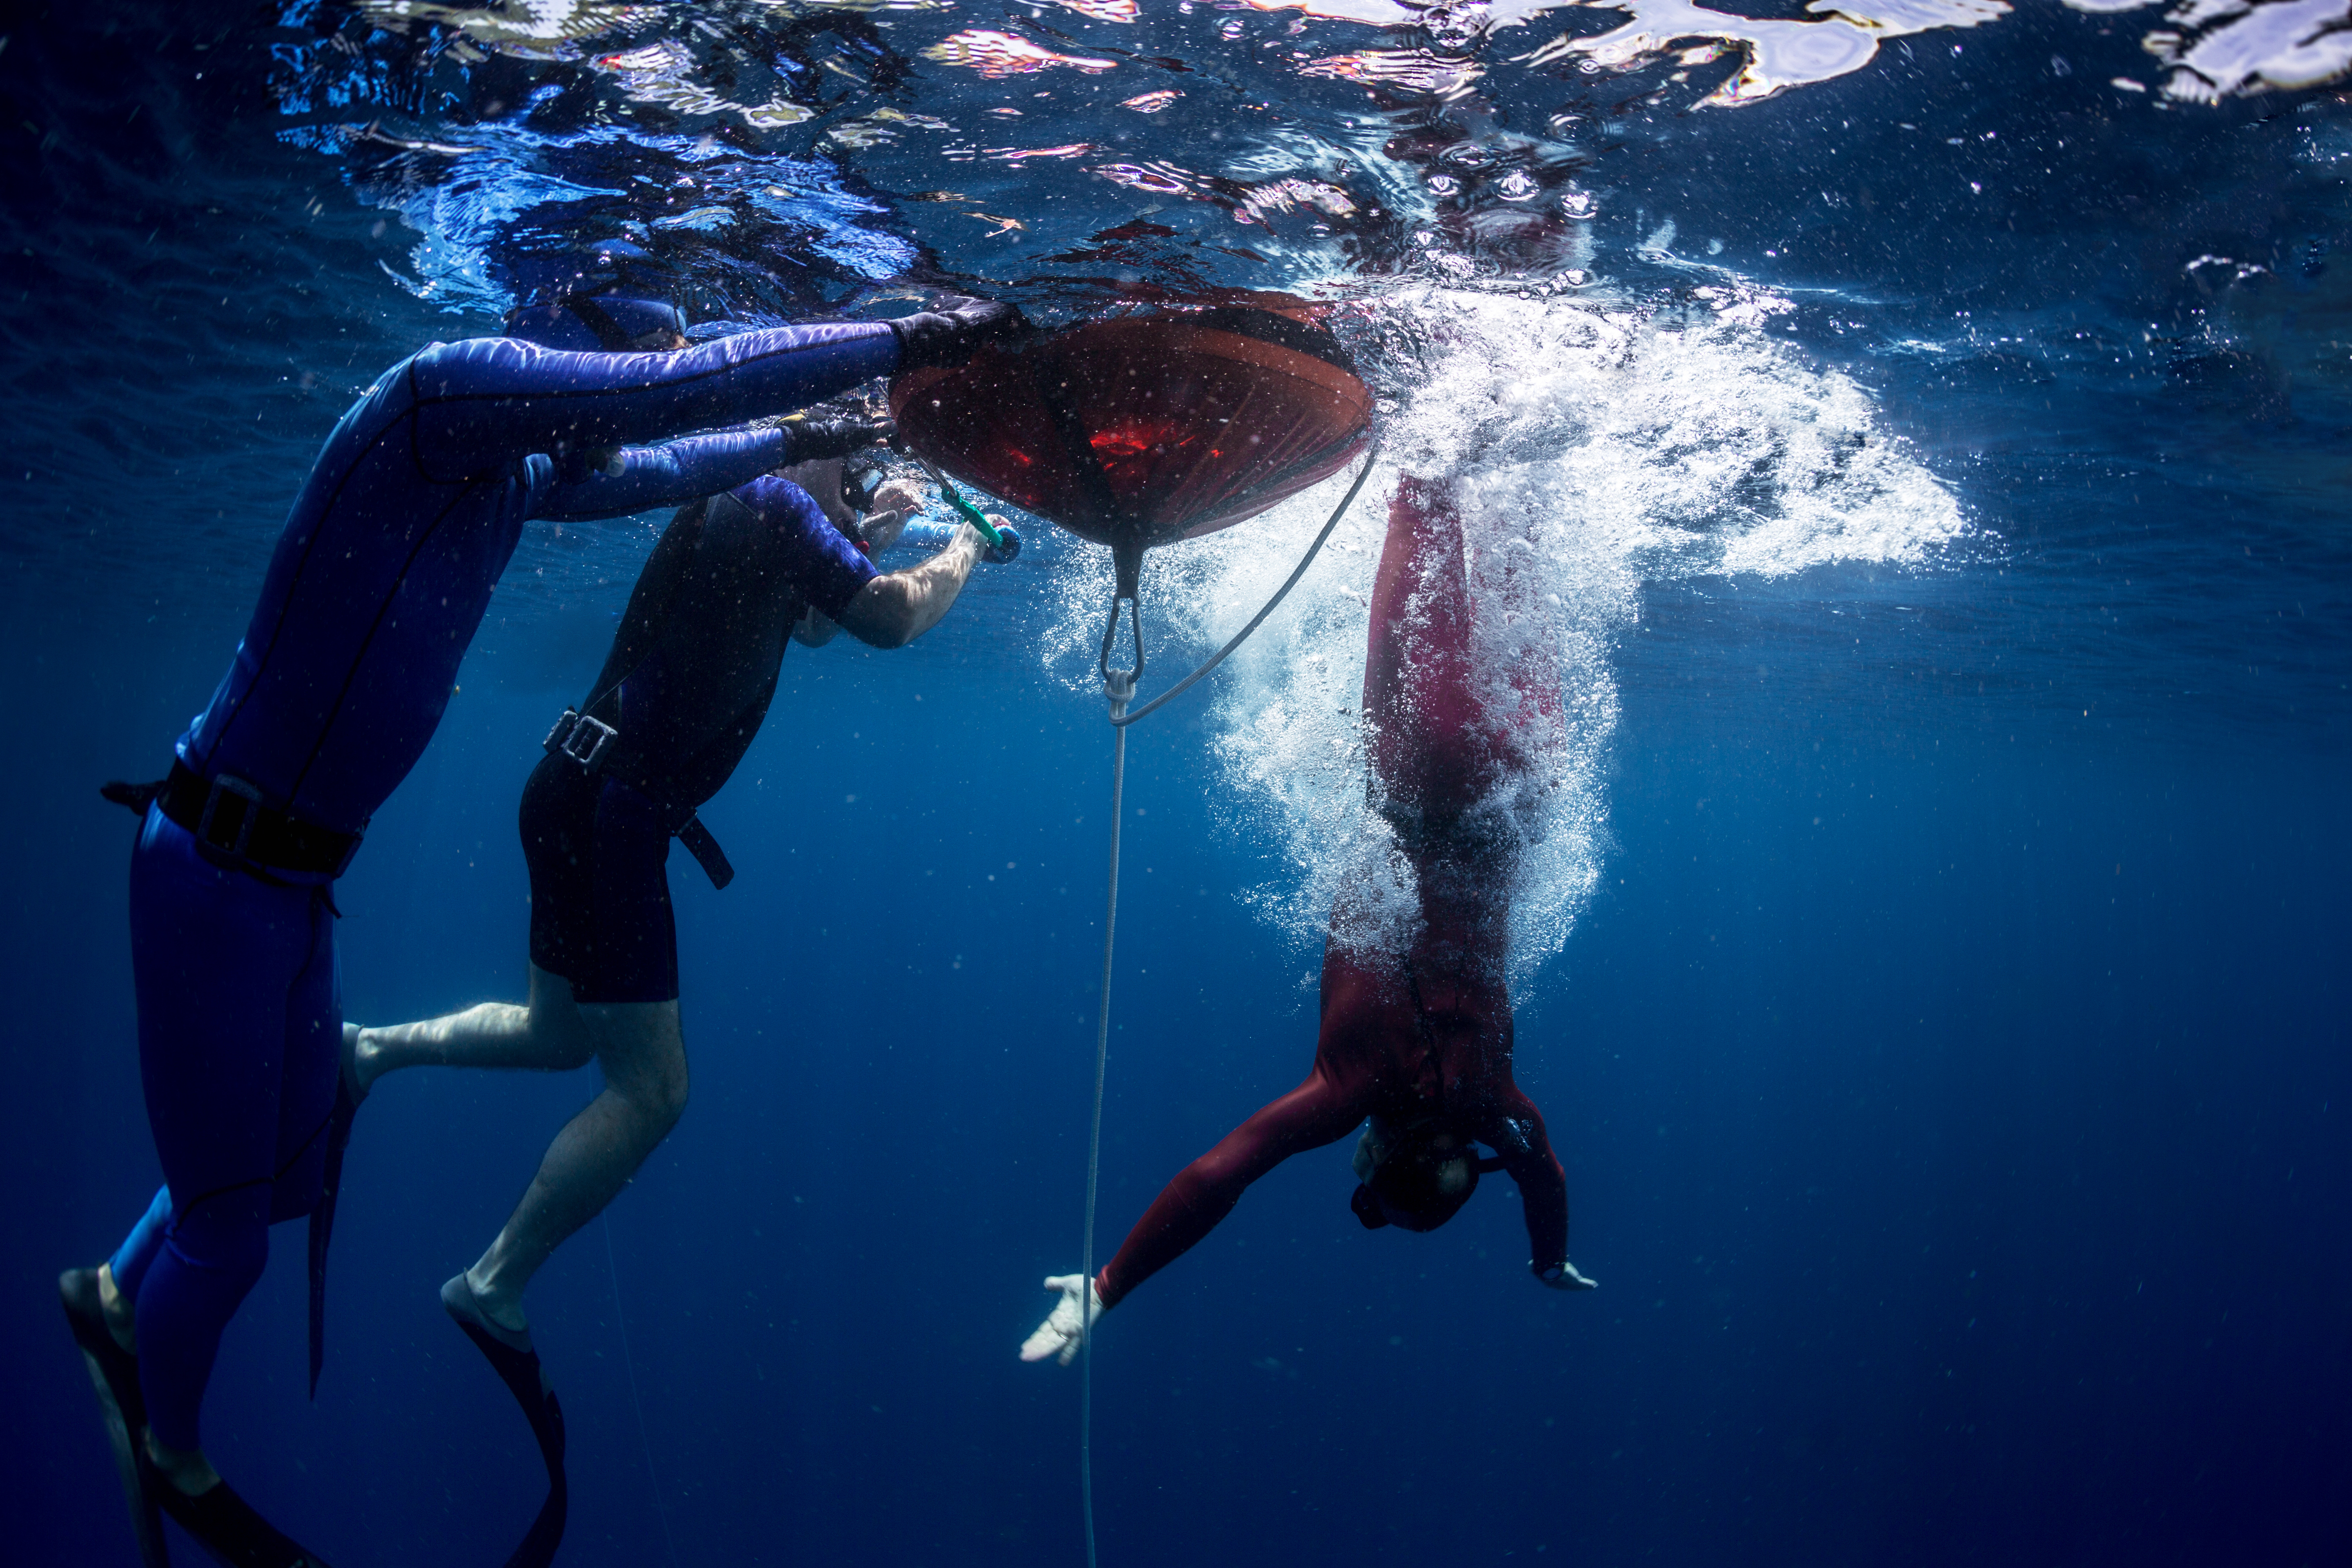 Free diver starts descending to the depth. Free immersion